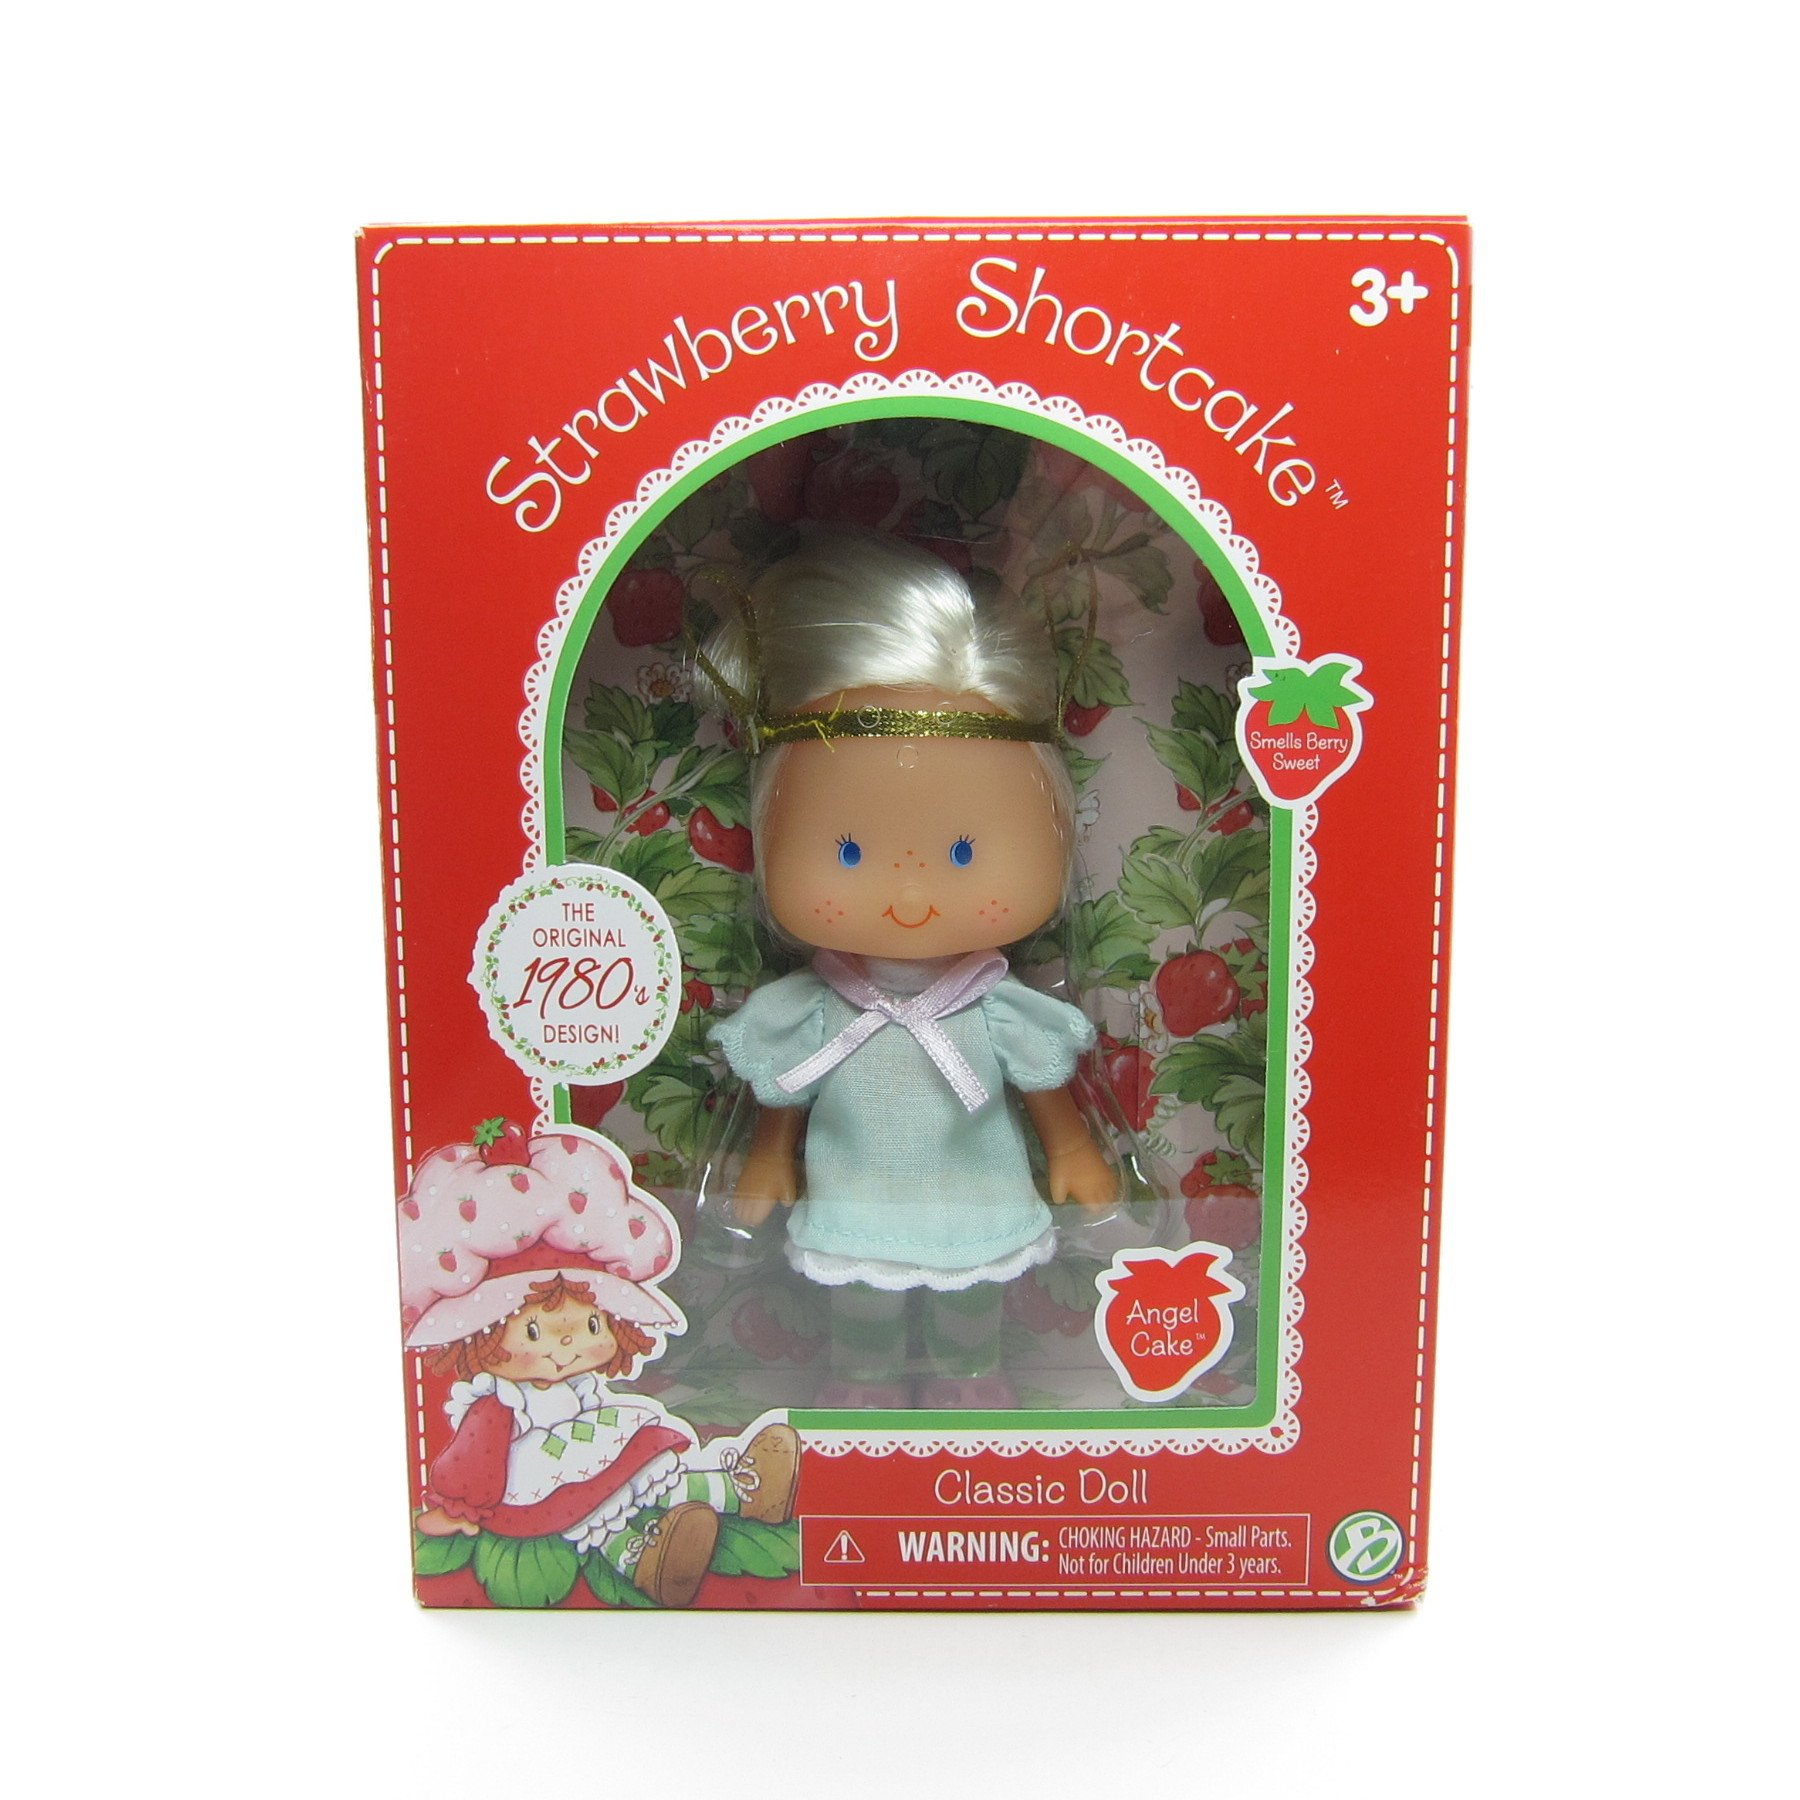 Strawberry Shortcake doll BRAND NEW Classic Vintage Style Blueberry Muffin bear